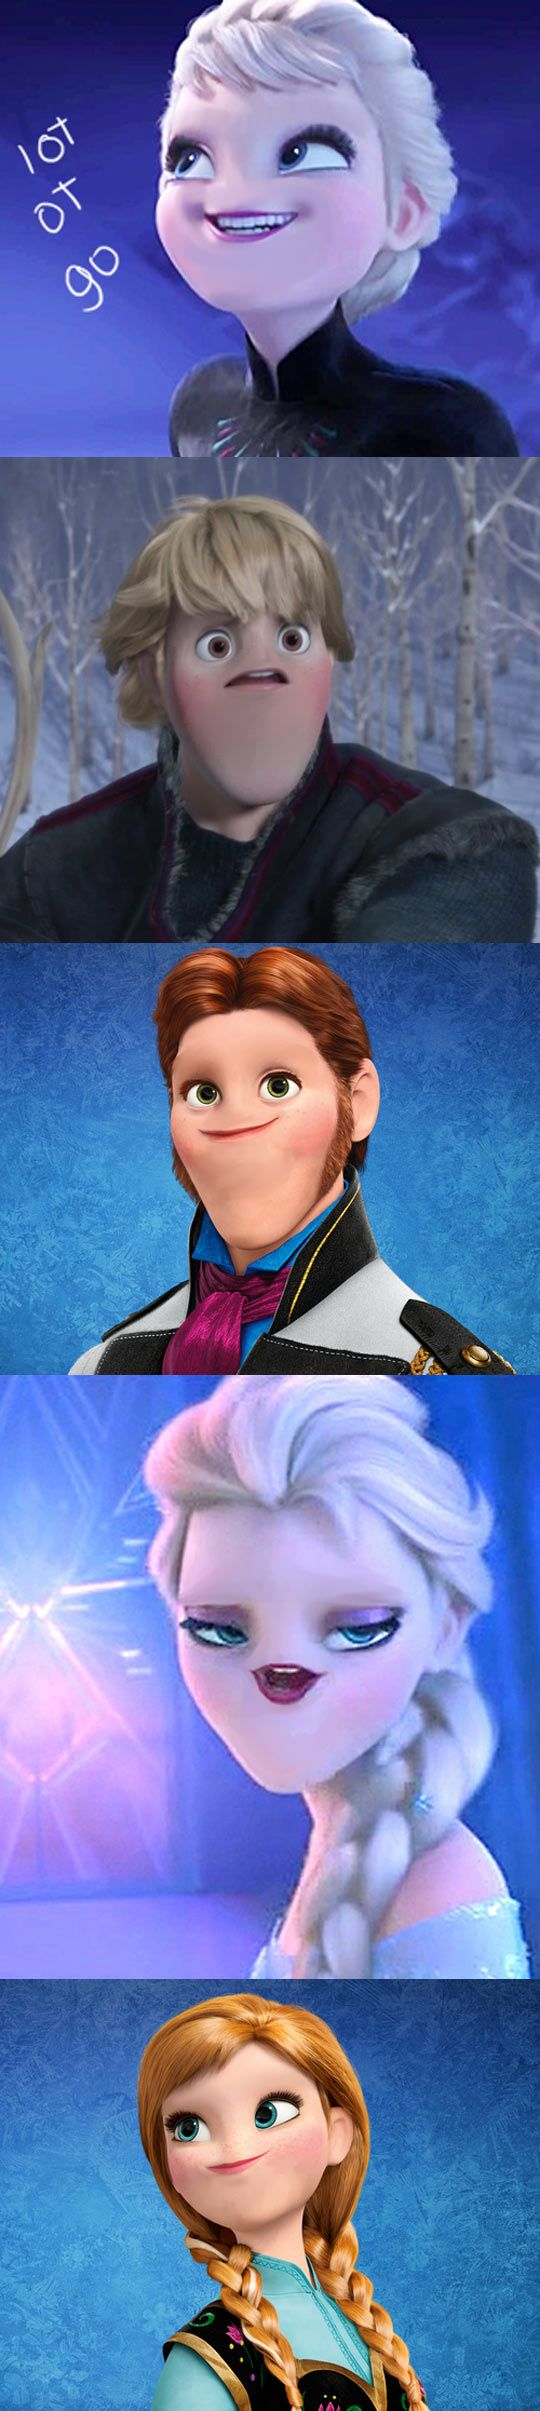 """The 'no nose' trend strikes again and leaves me helpless with giggling because Elsa looks like Cassandra.  """"""""LET IT GO.  LET IT GO!  DON'T MOISTURIZE ME ANY MOOORRRE."""""""